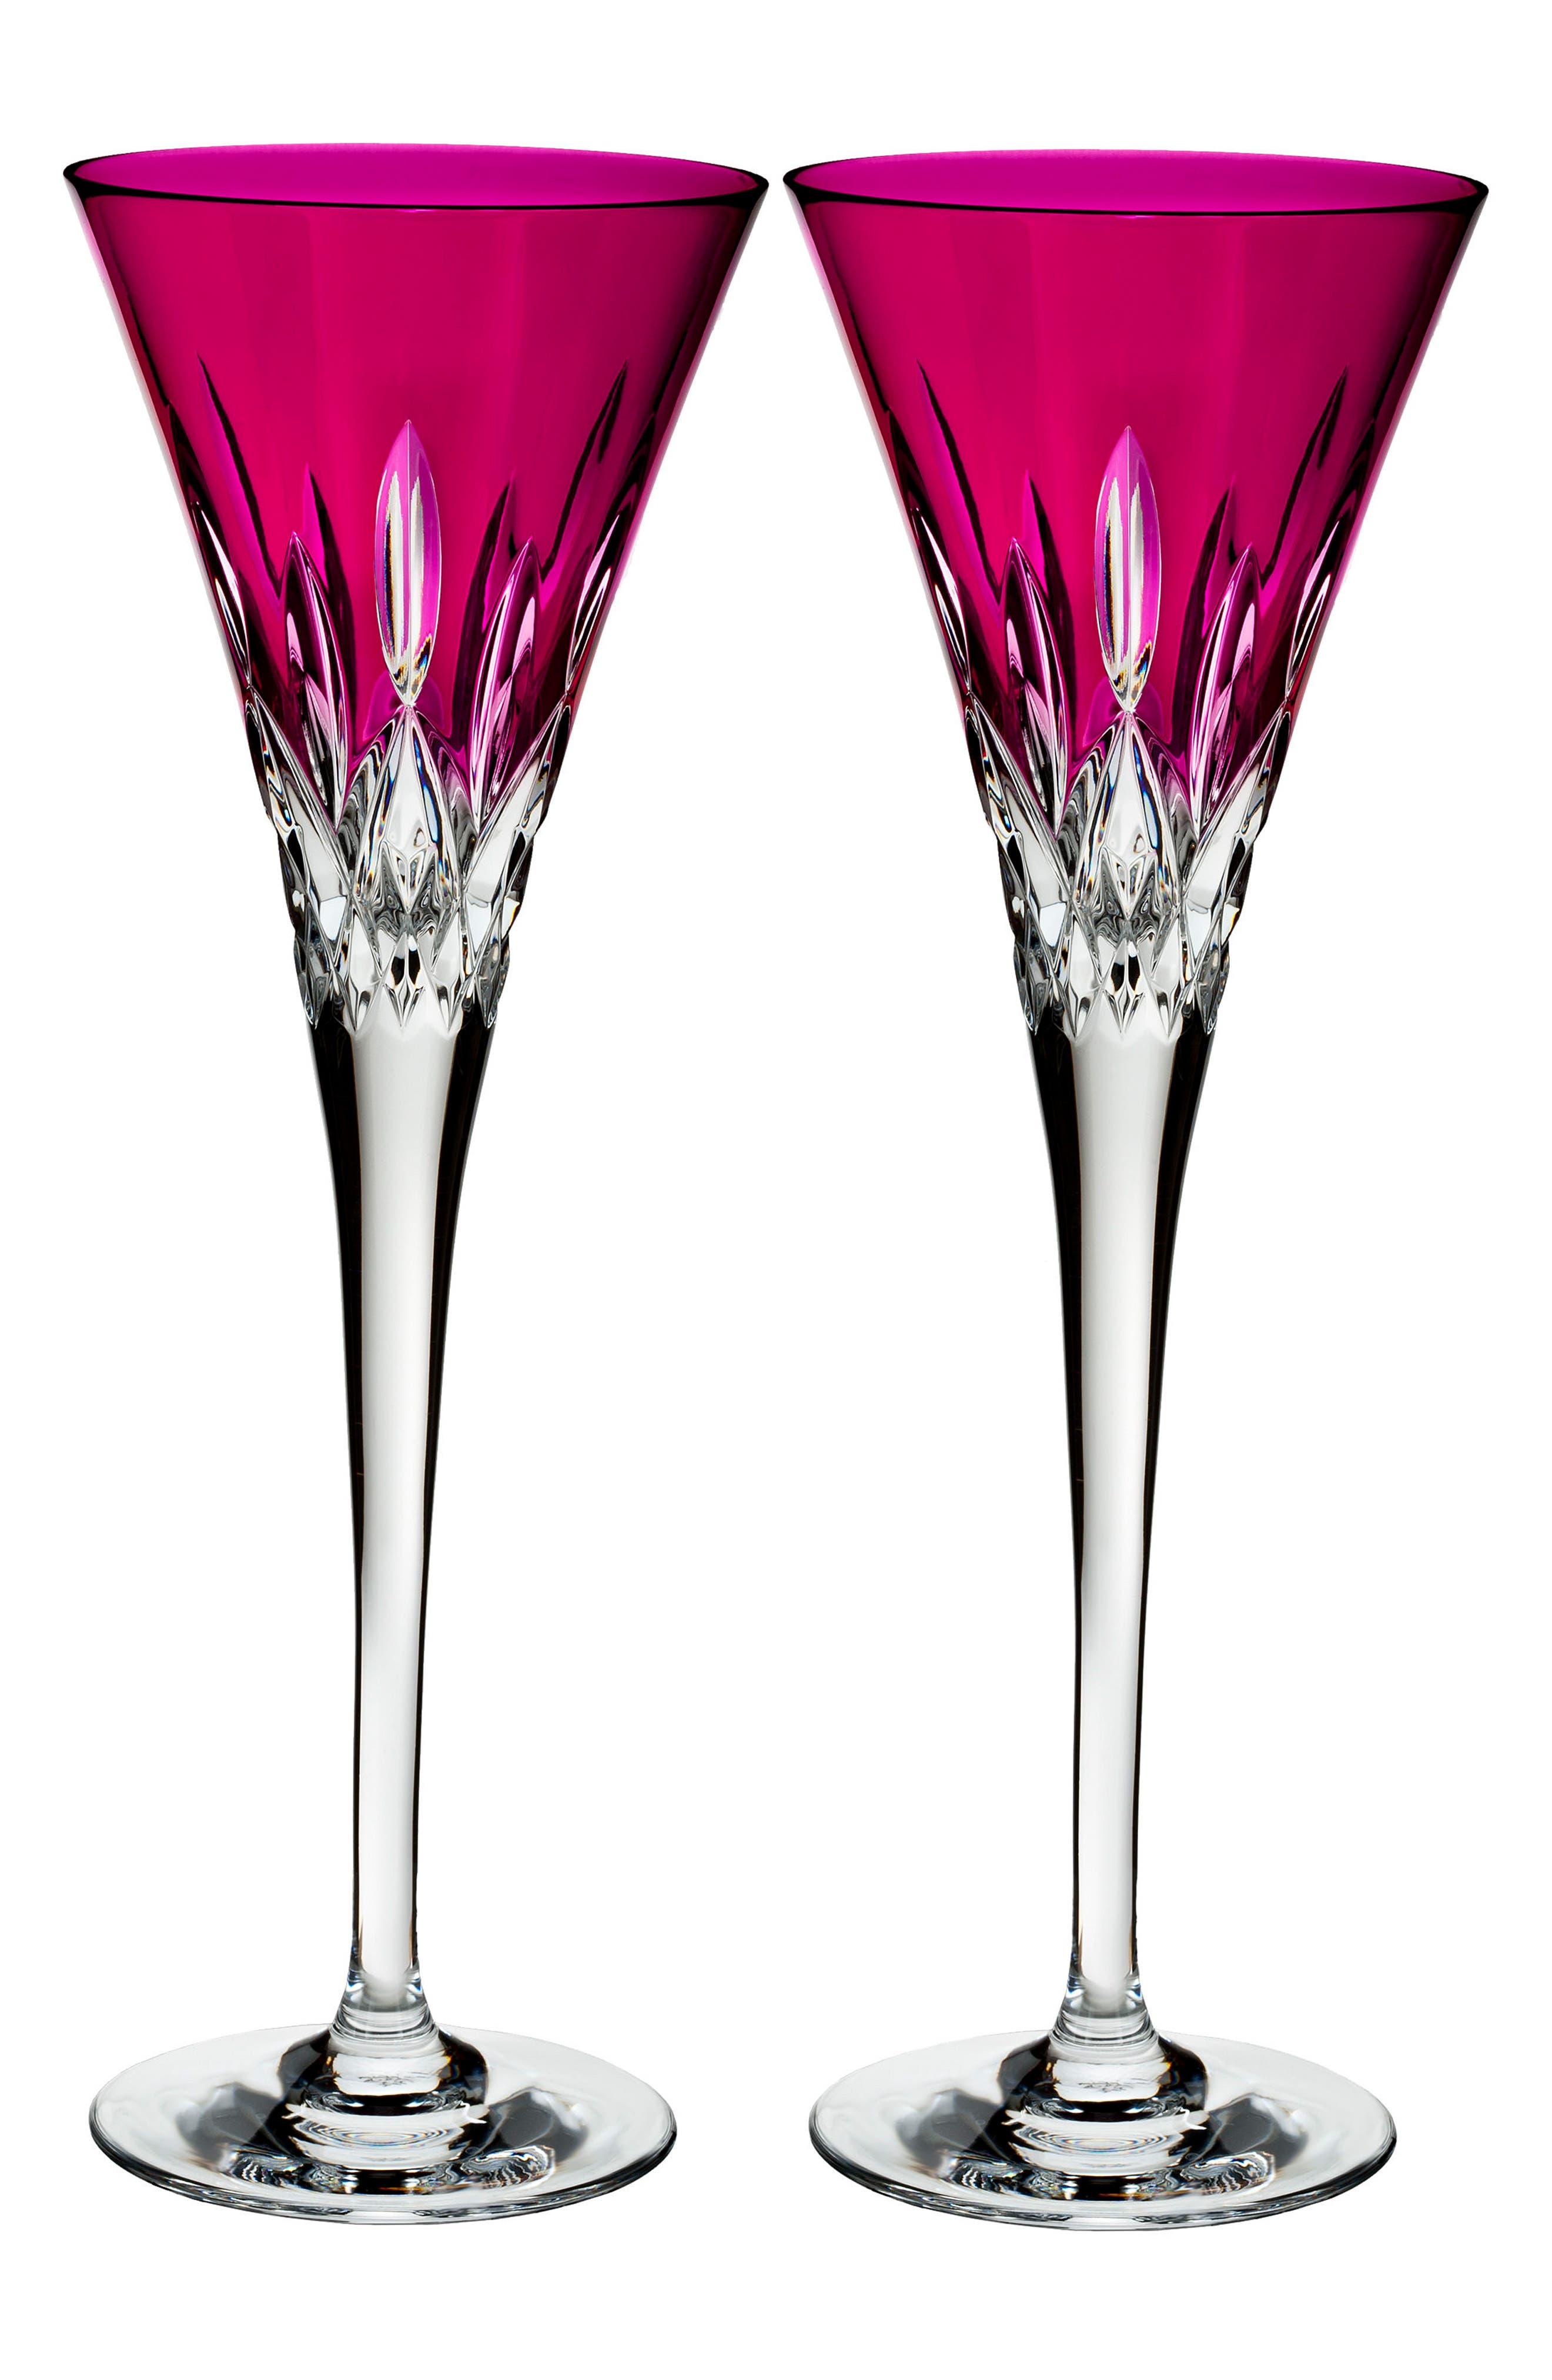 Main Image - Waterford Lismore Pops Set of 2 Hot Pink Lead Crystal Champagne Flutes